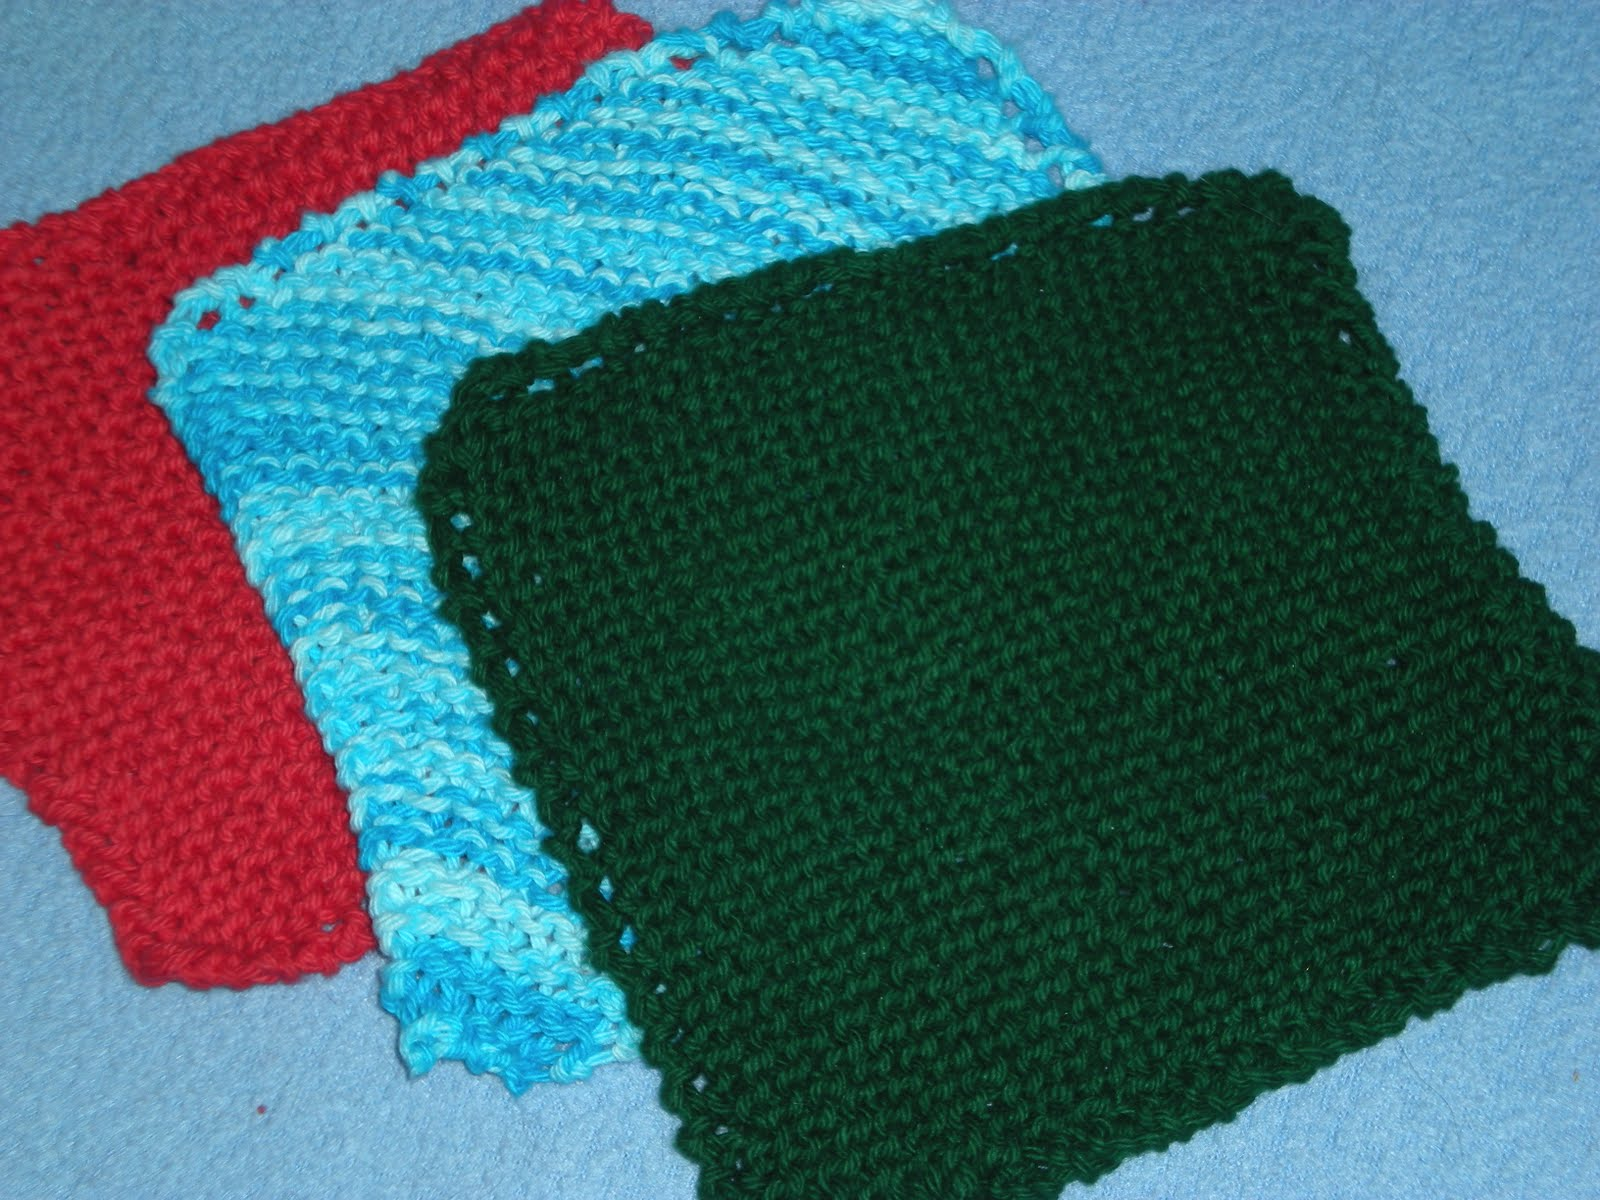 M Dishcloth Knitting Pattern : KNITTED PATTERNS FOR DISHCLOTHS   Browse Patterns